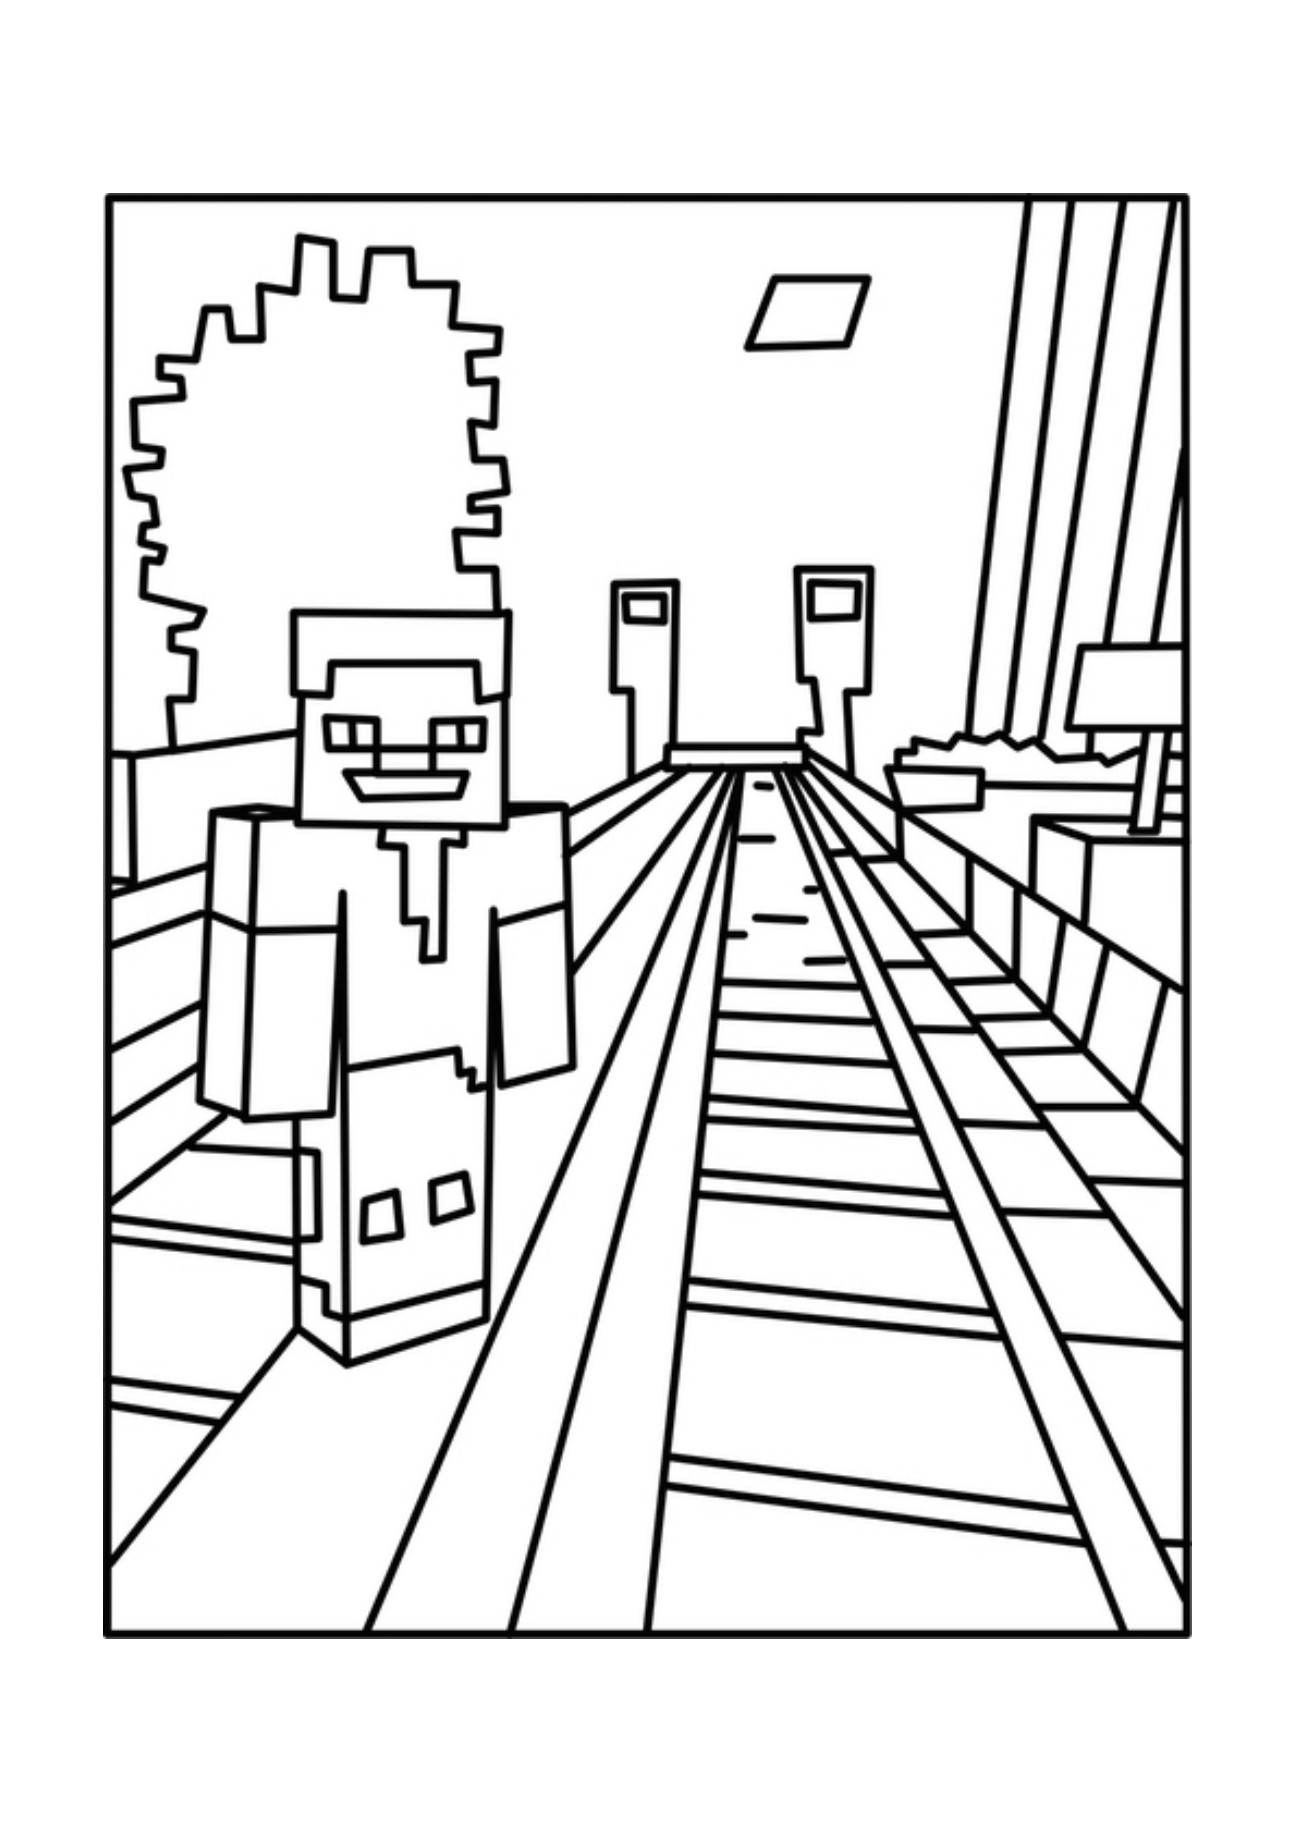 Best ideas about Minecraft Coloring Book For Kids . Save or Pin Printable Minecraft Coloring Pages AZ Coloring Pages Now.